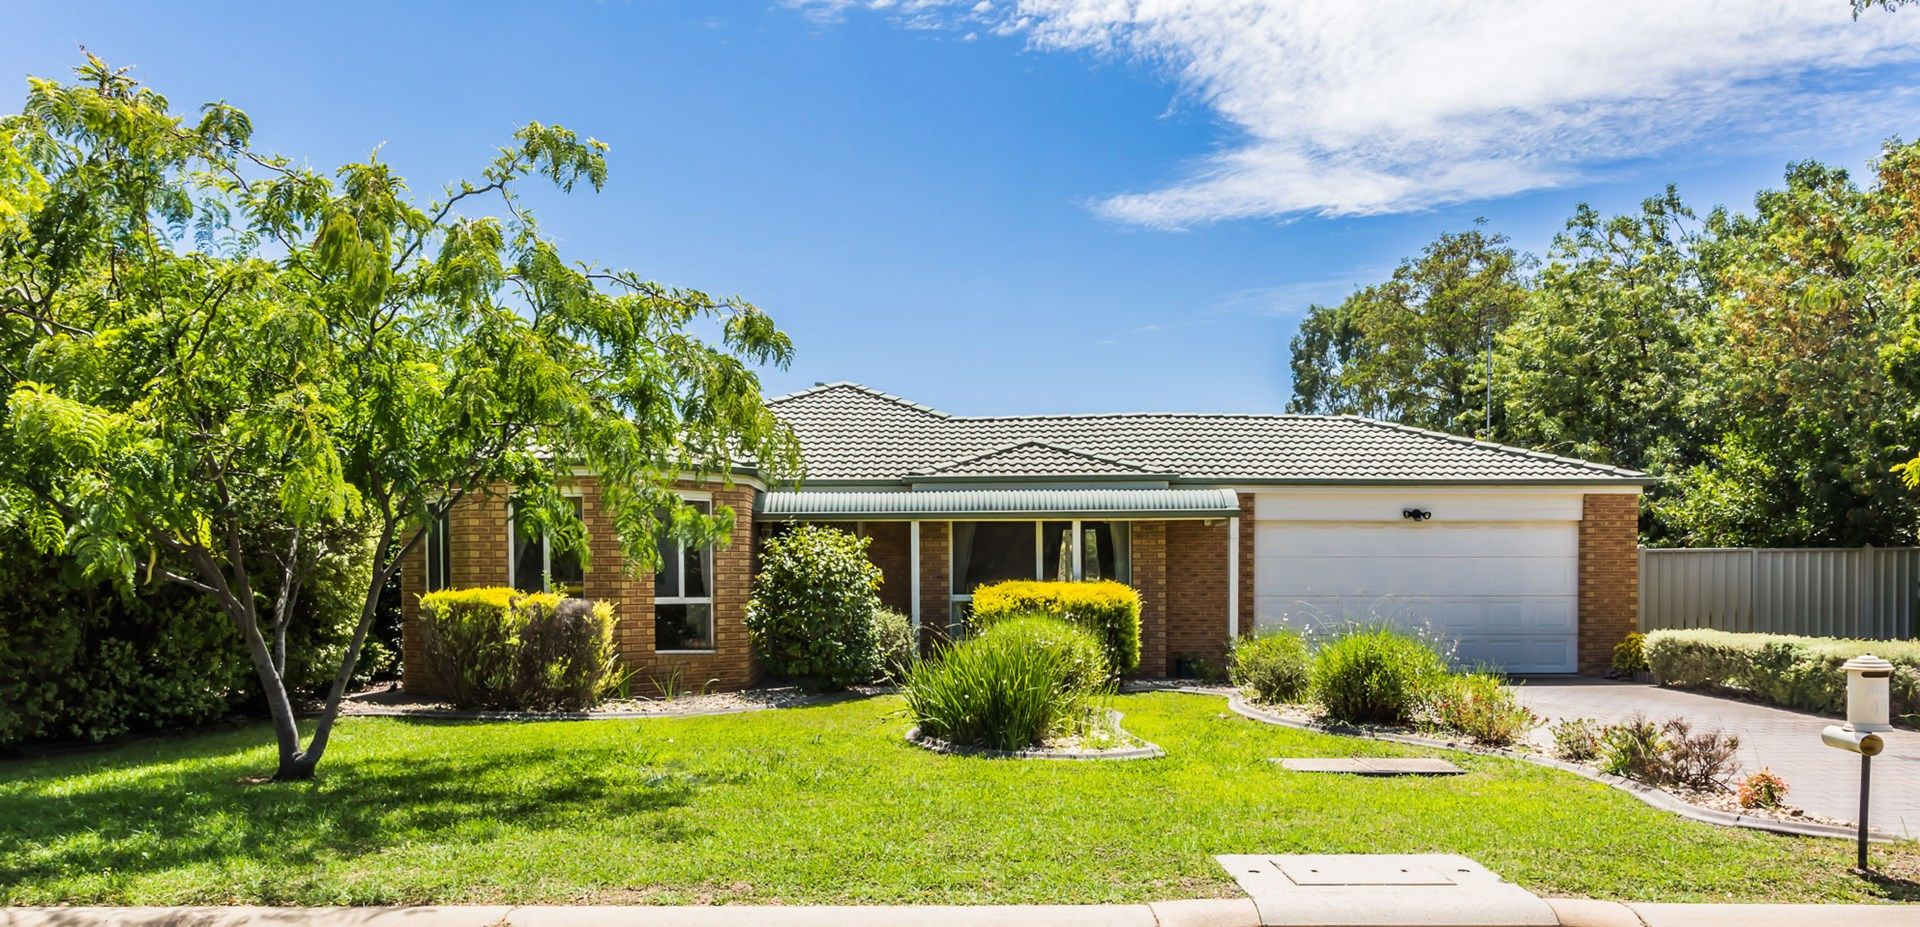 45 Kingfisher  Drive, Moama NSW 2731, Image 1